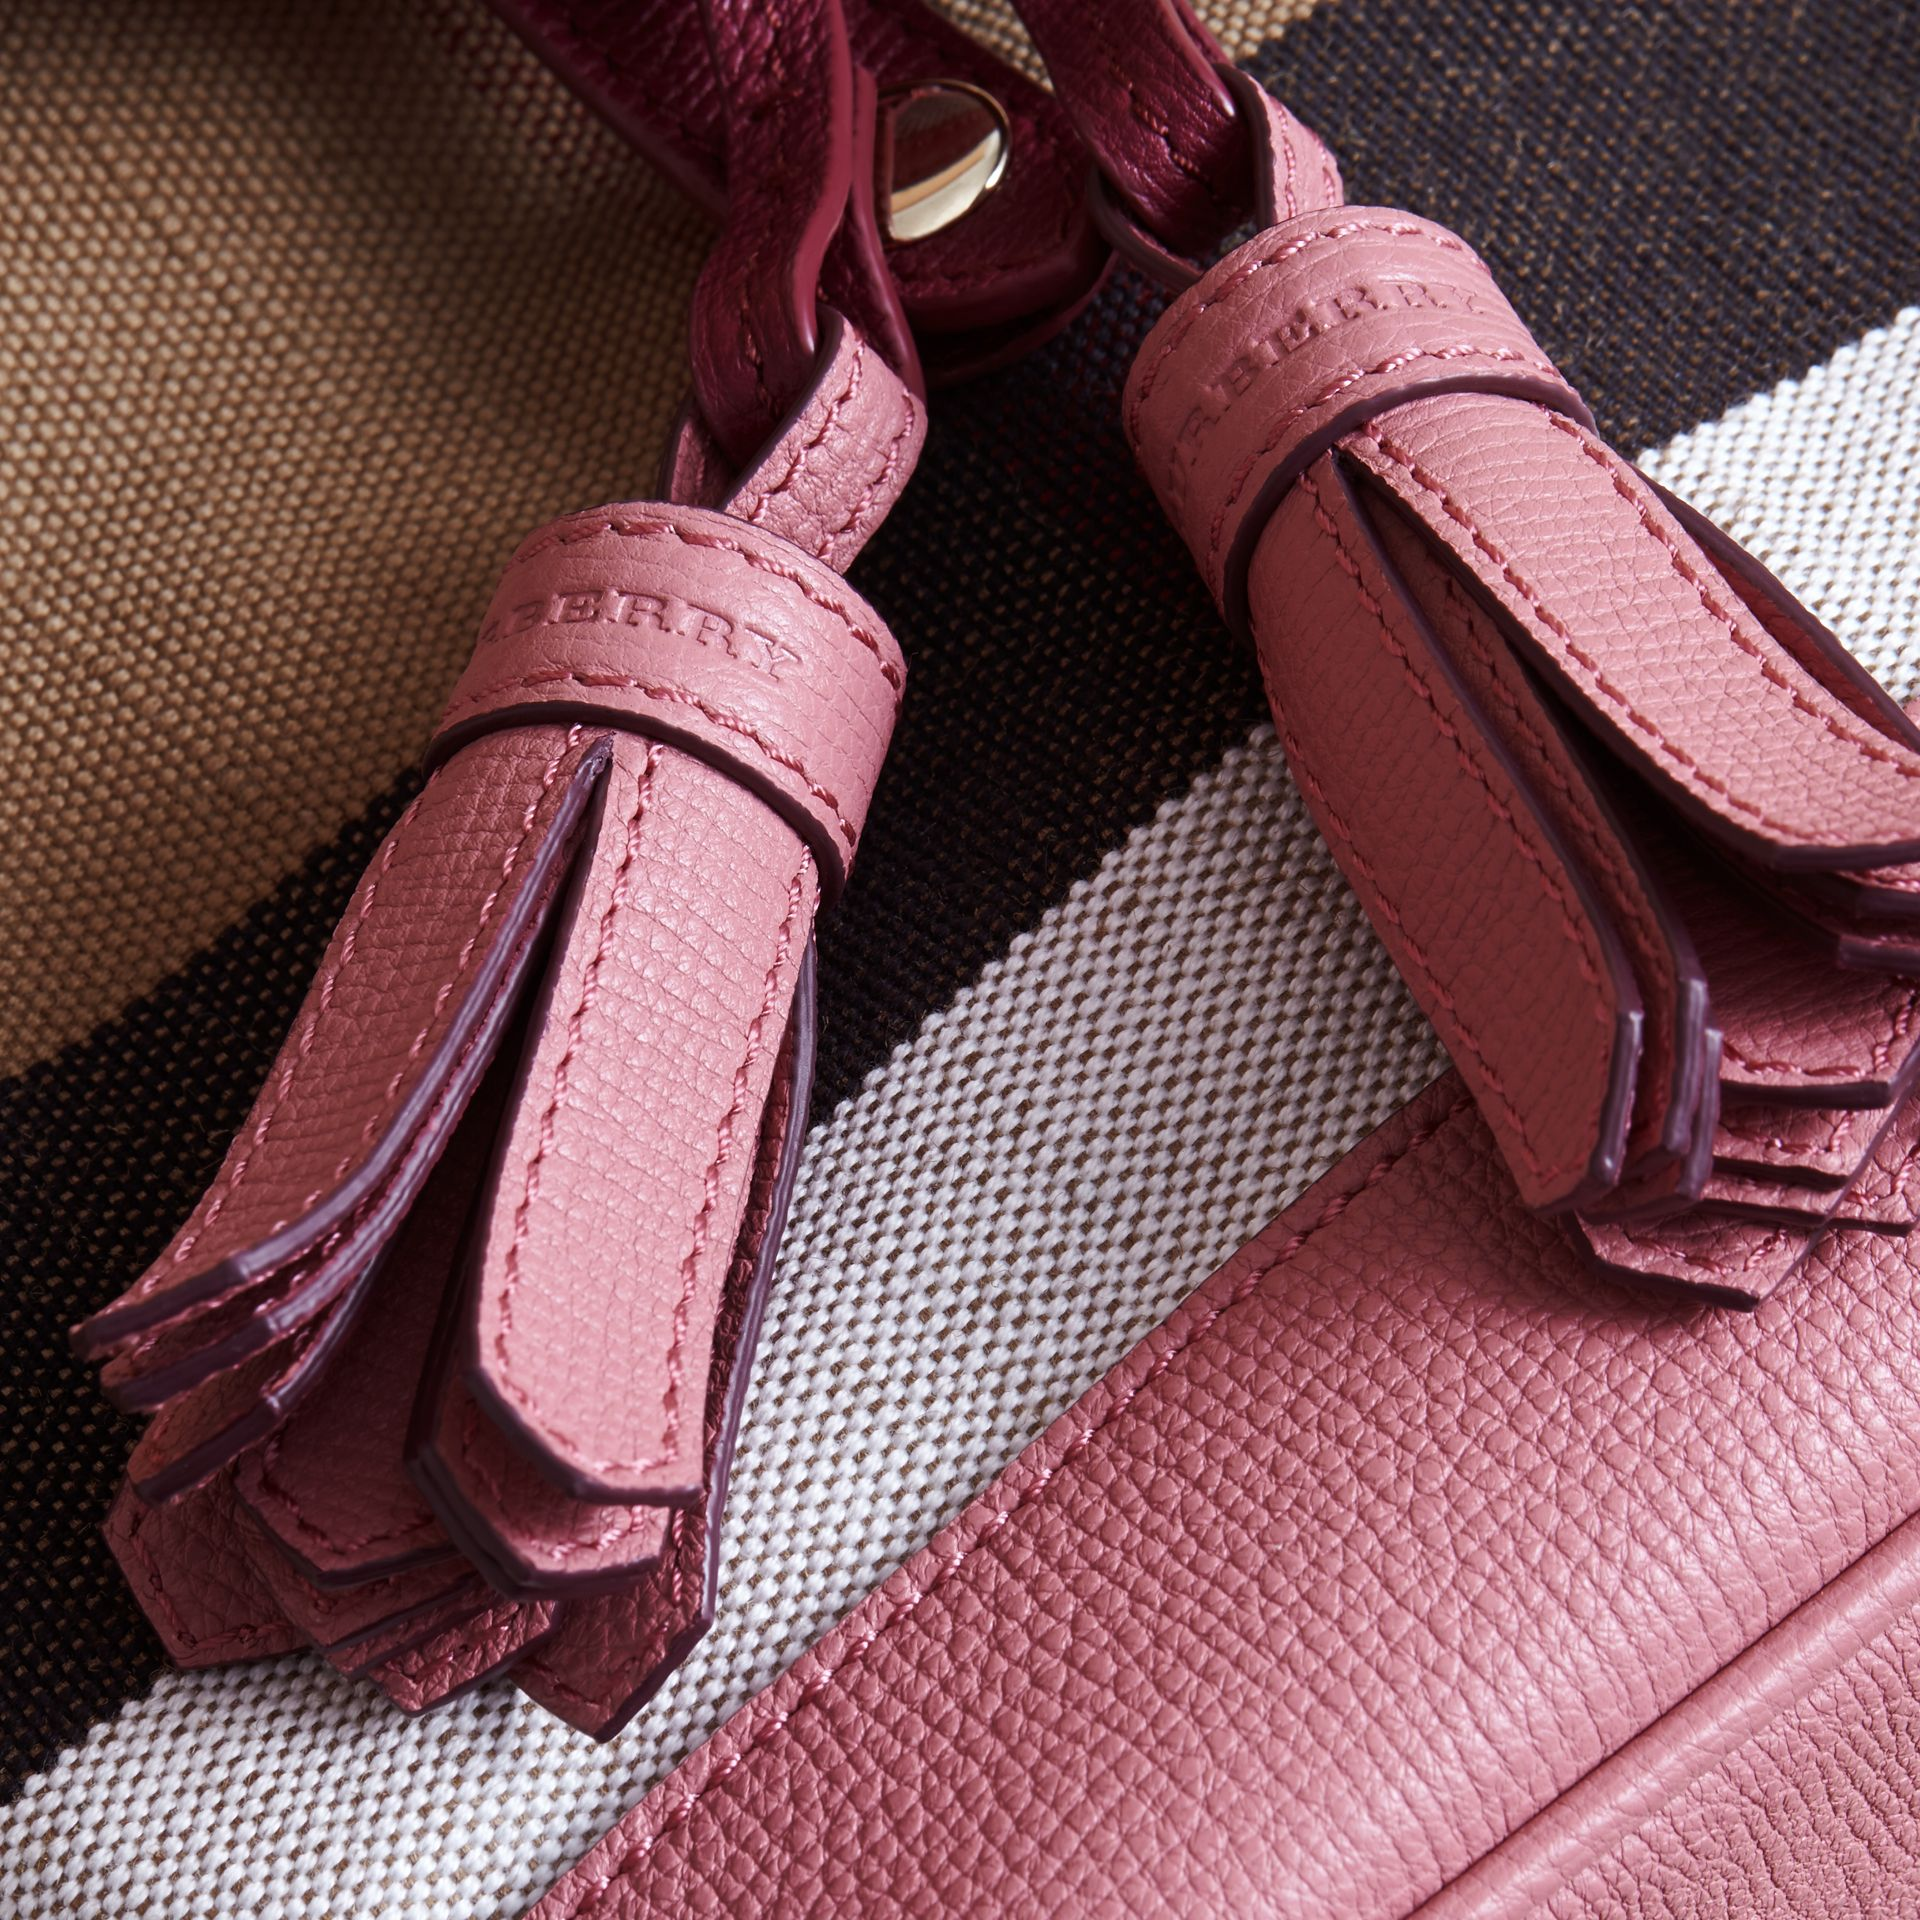 Weather Motif Canvas Check Mini Backpack in Mauve Pink | Burberry - gallery image 2